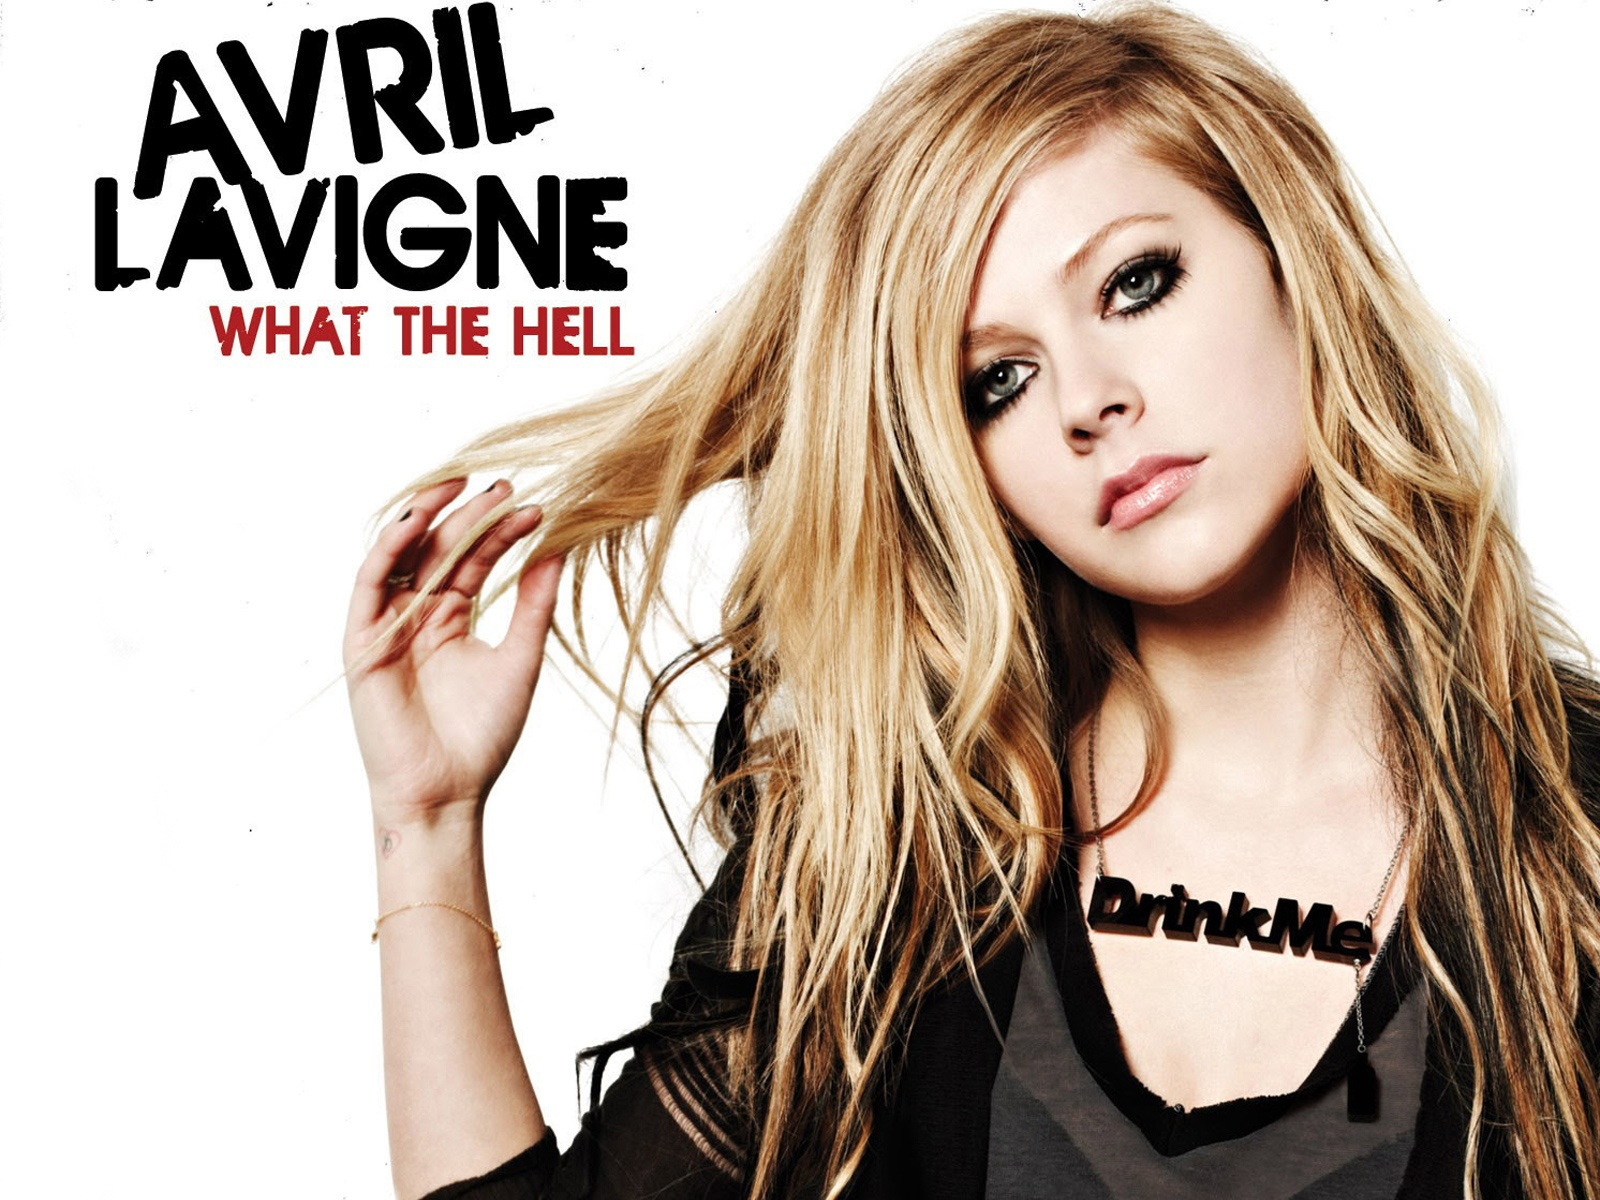 avril lavigne what the hell wallpapers in jpg format for free download